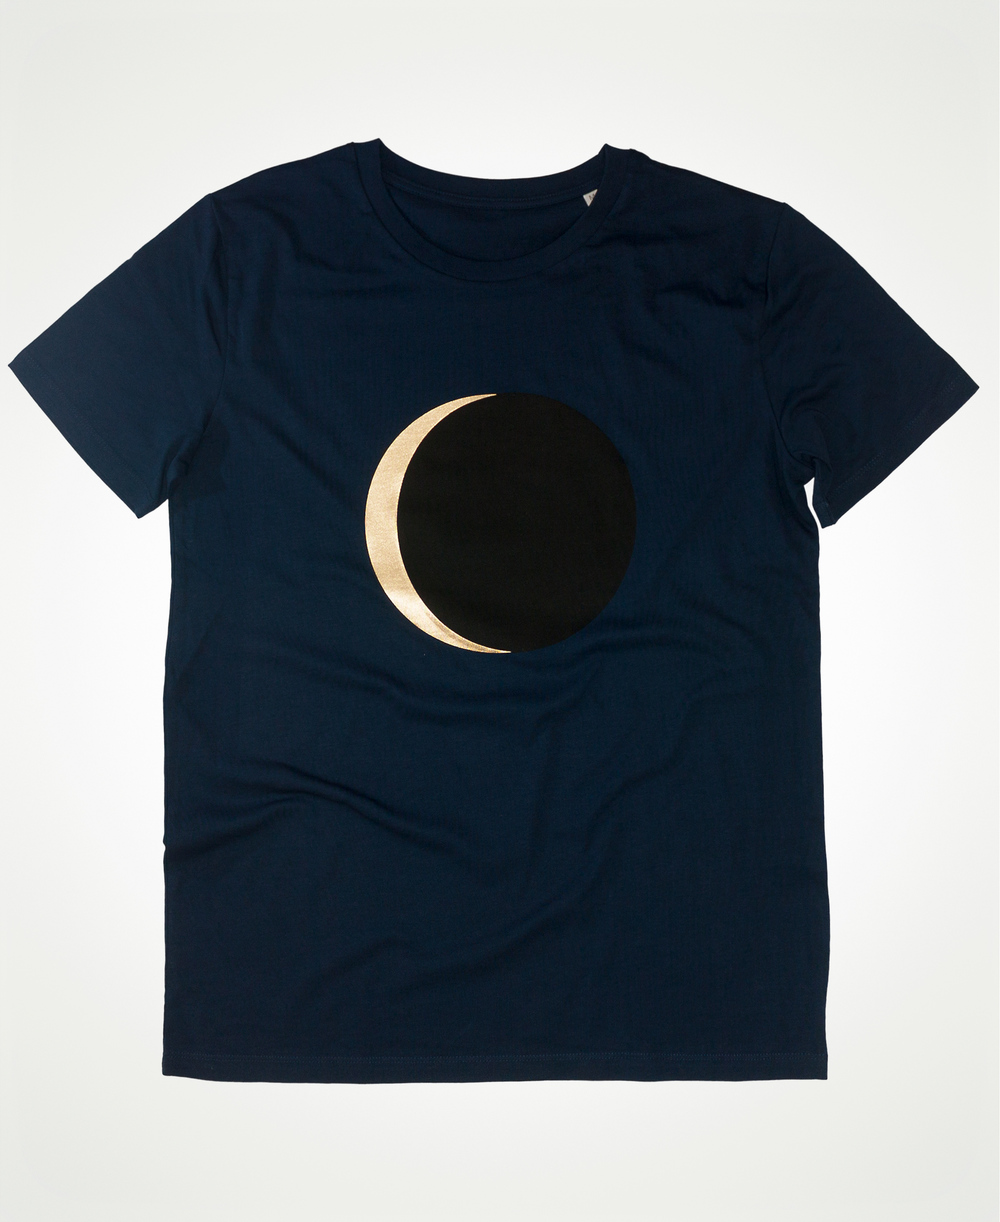 crescent-moon-unisex-navy-tee-organic-cotton.jpg